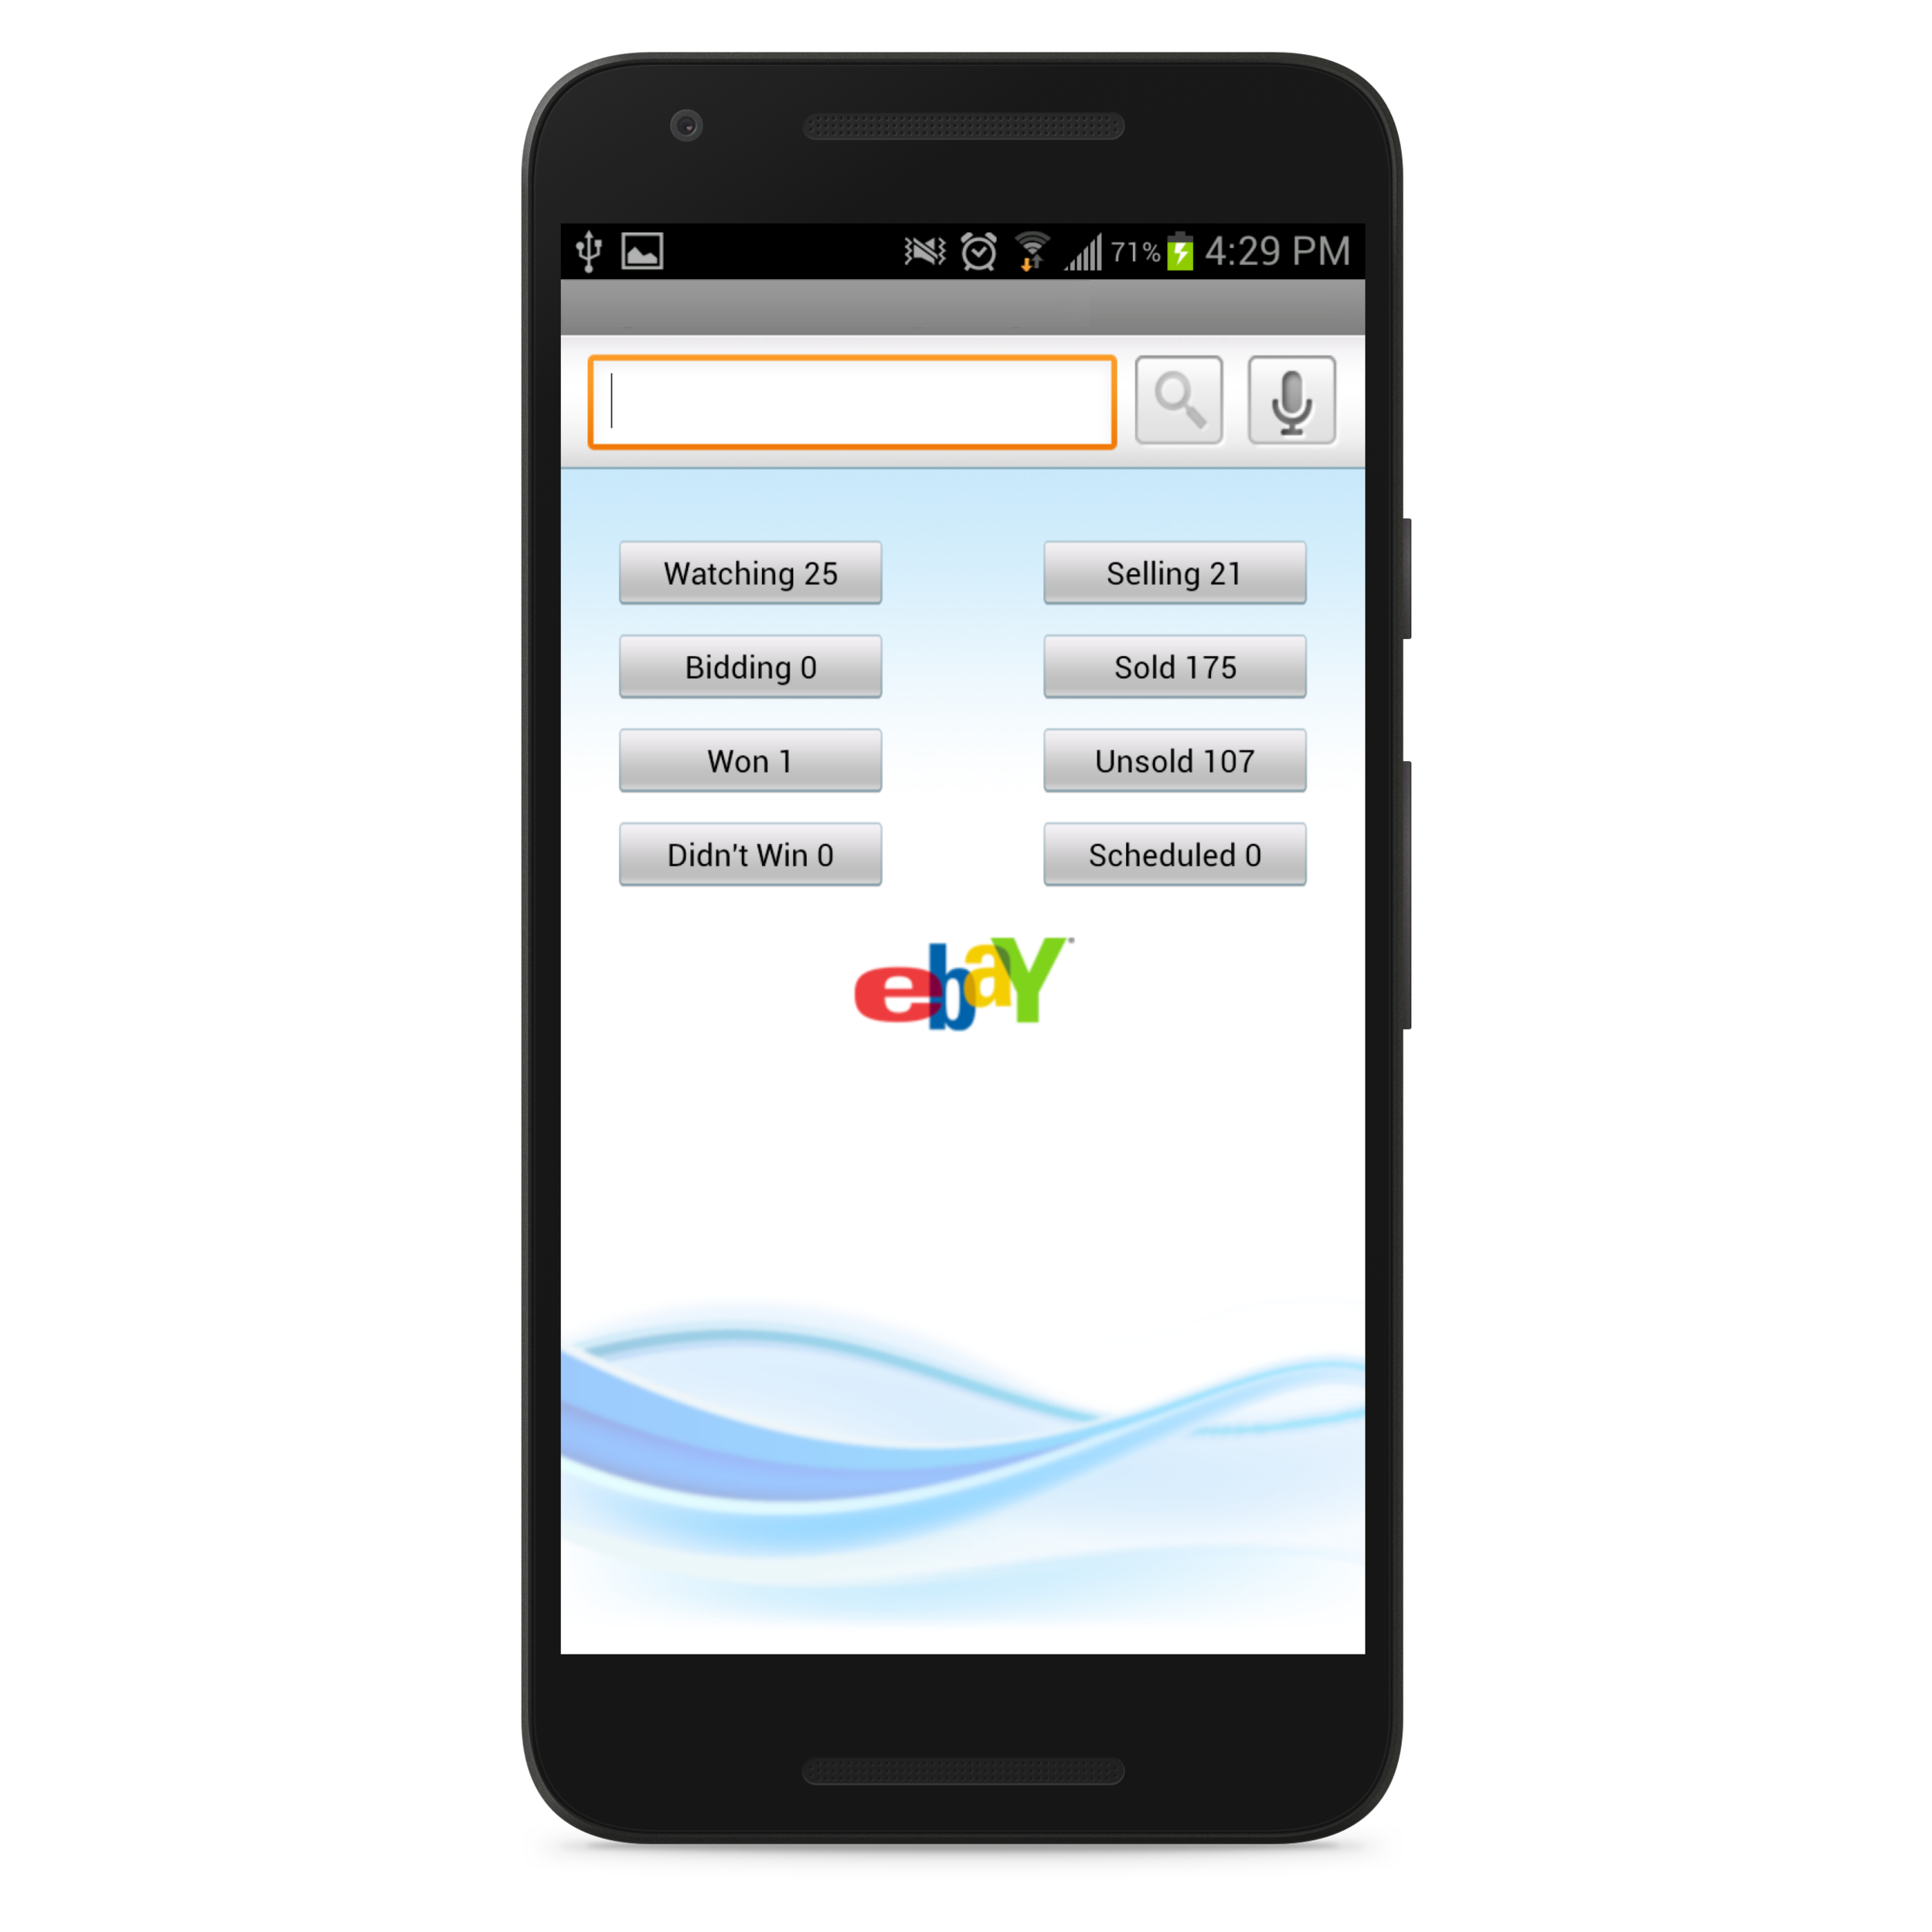 ebay-android-1.0.png